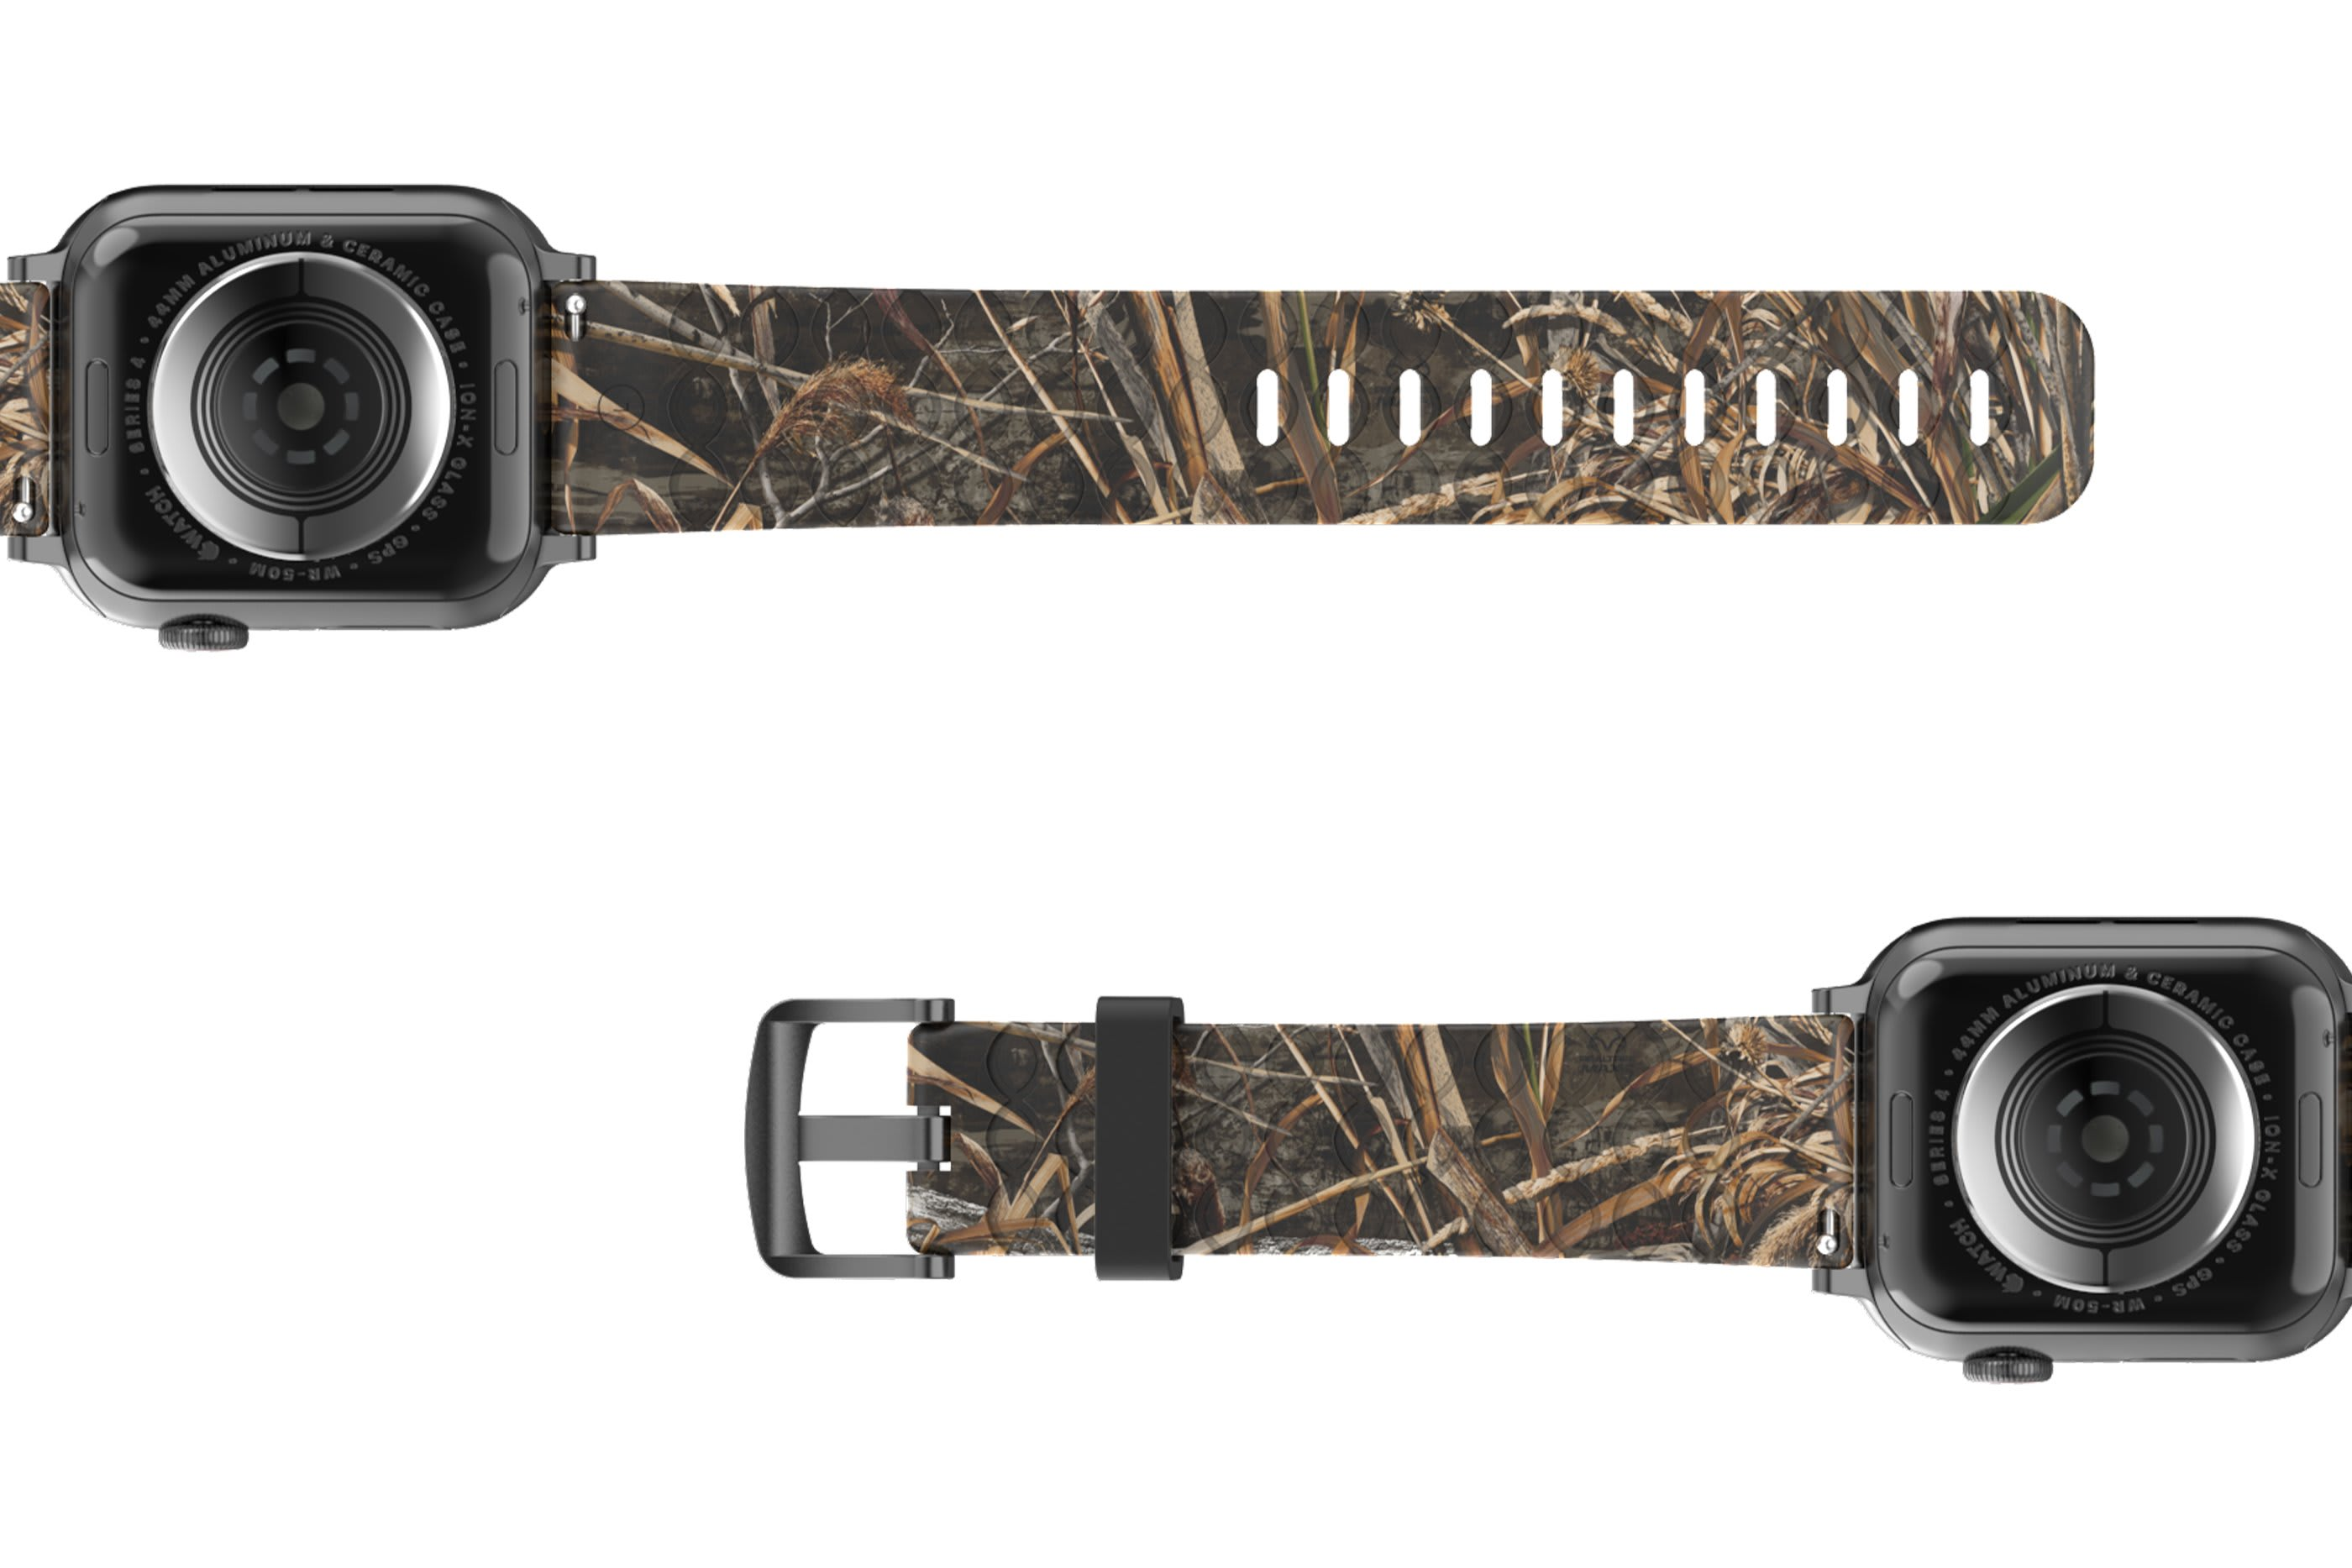 Realtree Max 5 Apple Watch Band with silver hardware viewed bottom up